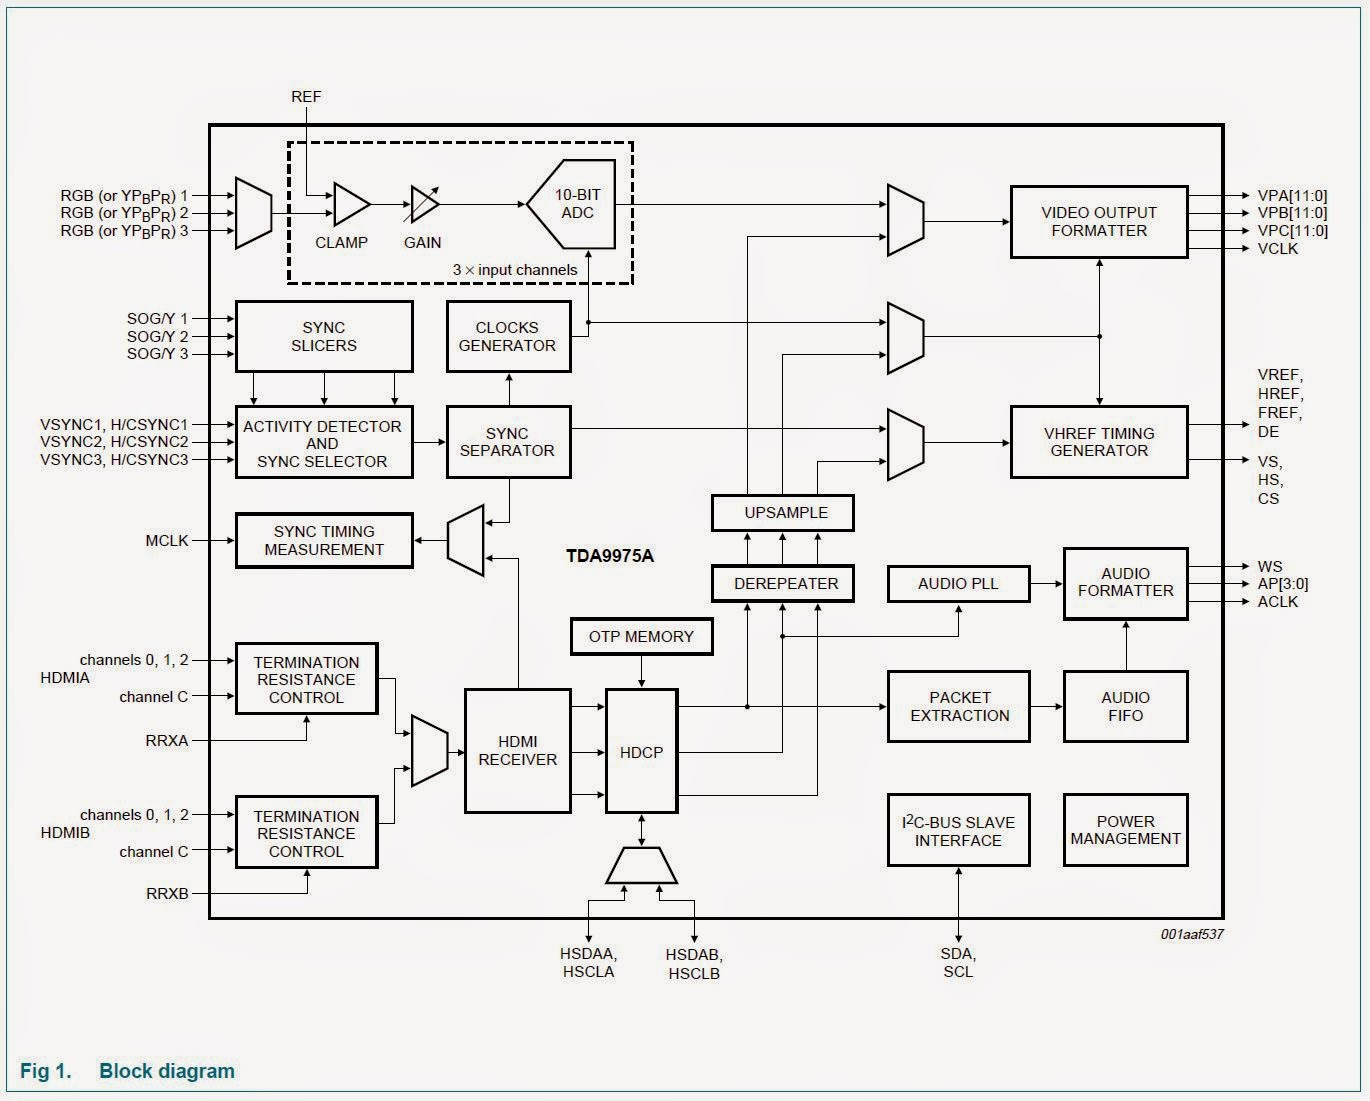 Vk4zxi Blackmagic Design Atem Tv Studio Problems With 1080p A H 264 Block Diagram Hardware Limited To 1080i